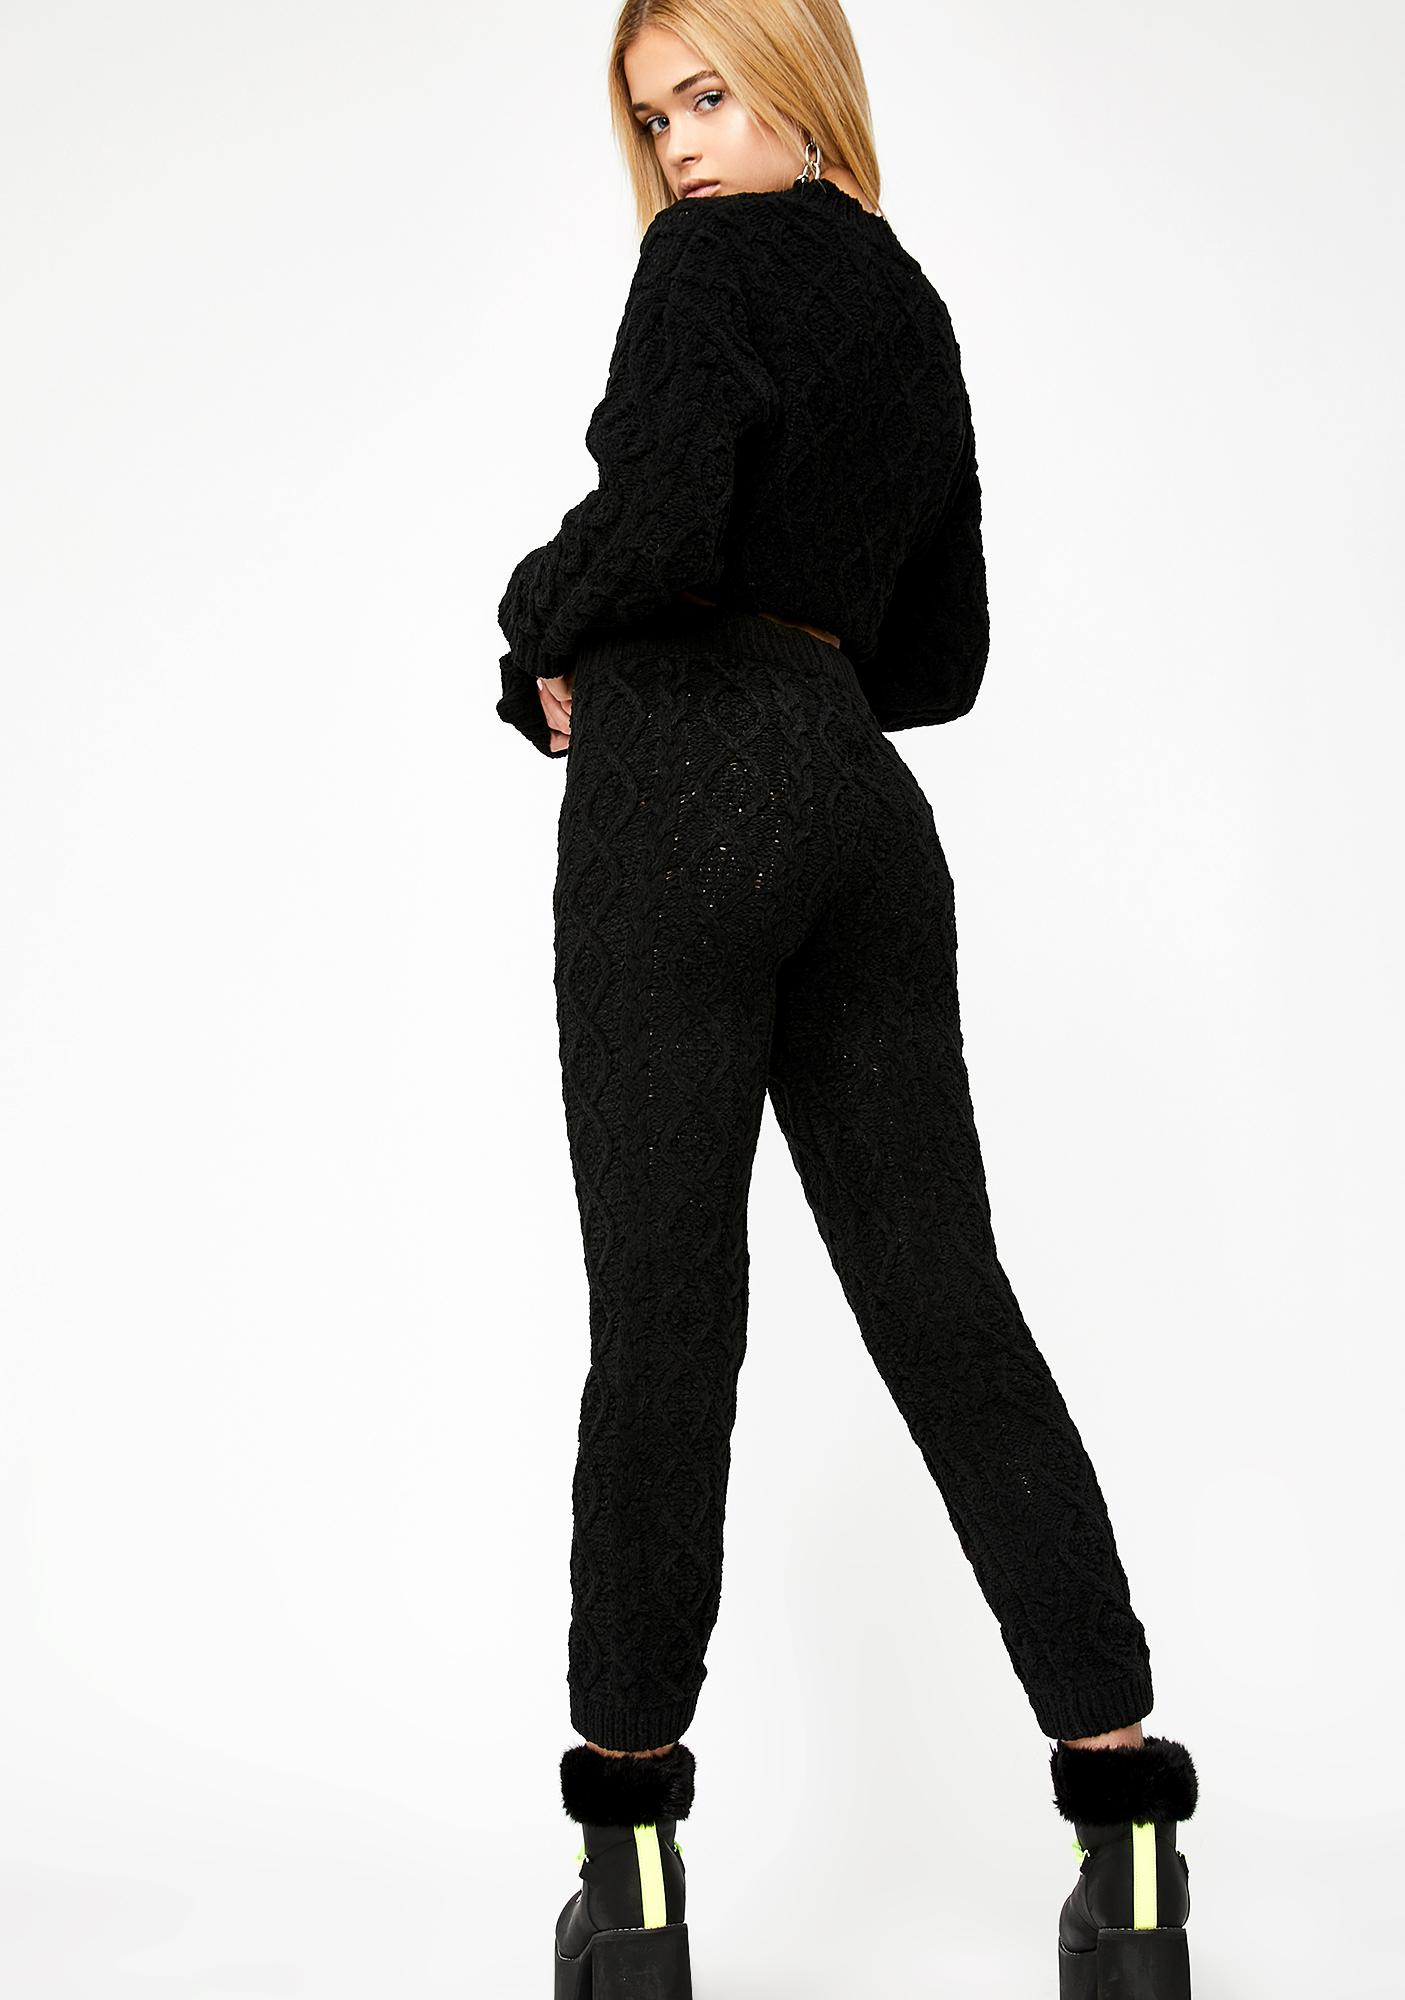 Lady Of Leisure Knit Pants